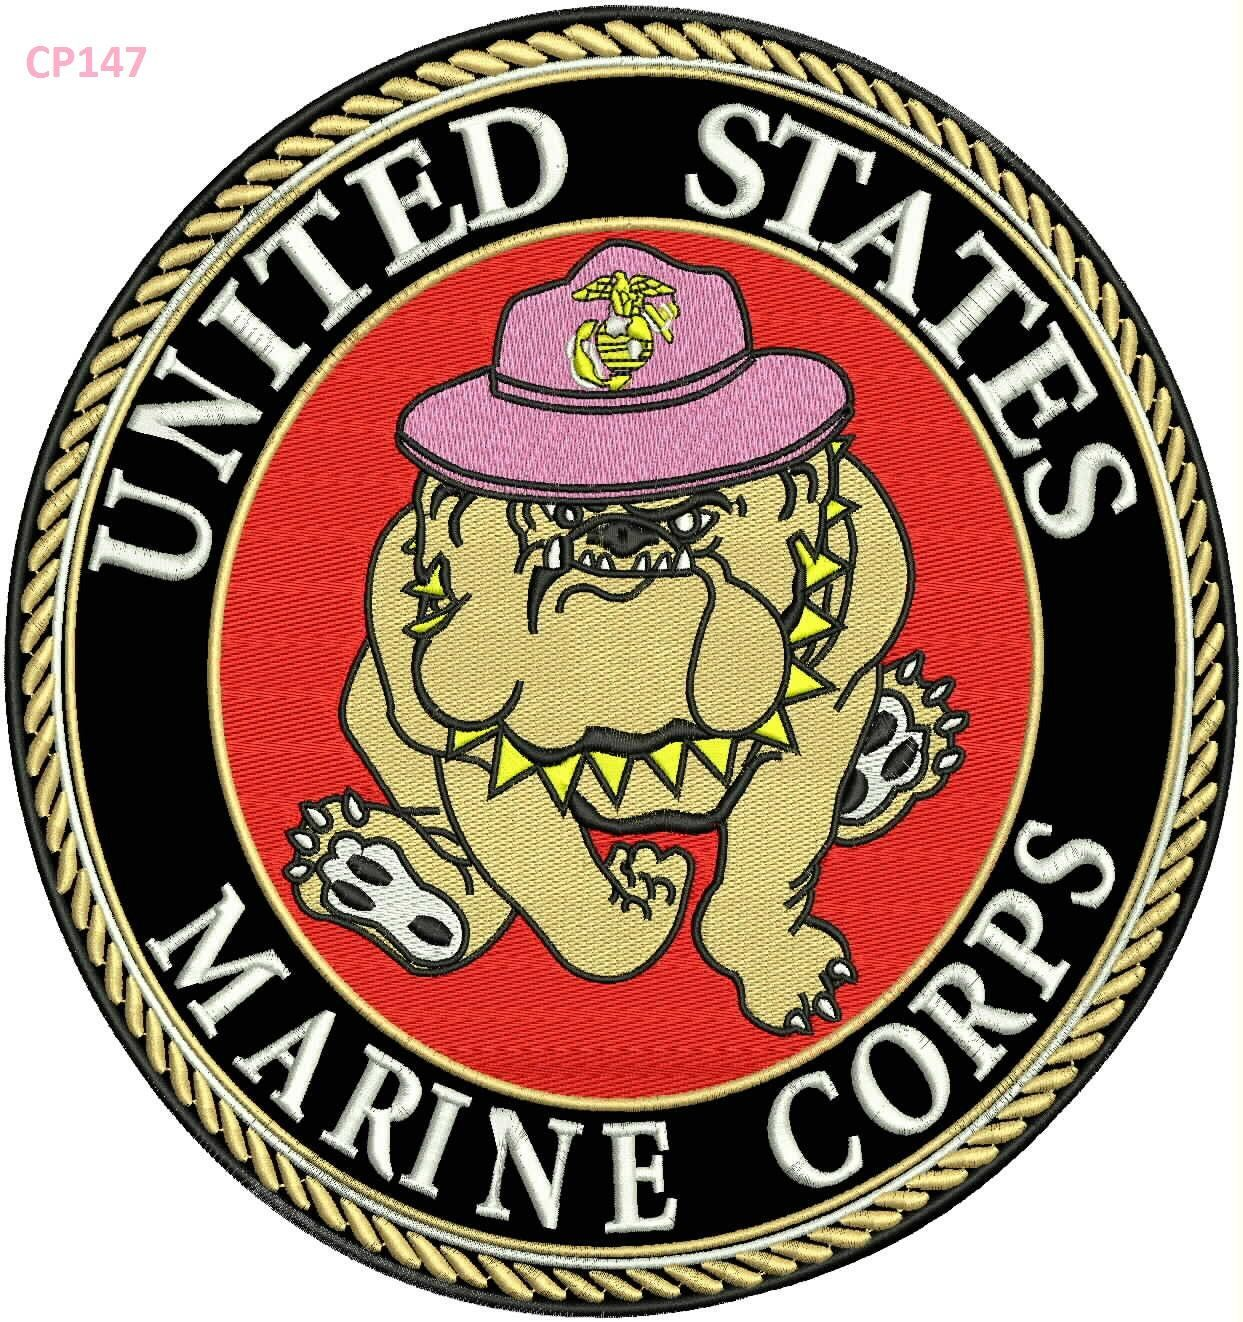 United States Marine Corps Bull Dog In Hat Patch For Vest Jacket Embroidered Patches For Jacket Ve Hat Patches United States Marine Corps United States Marine